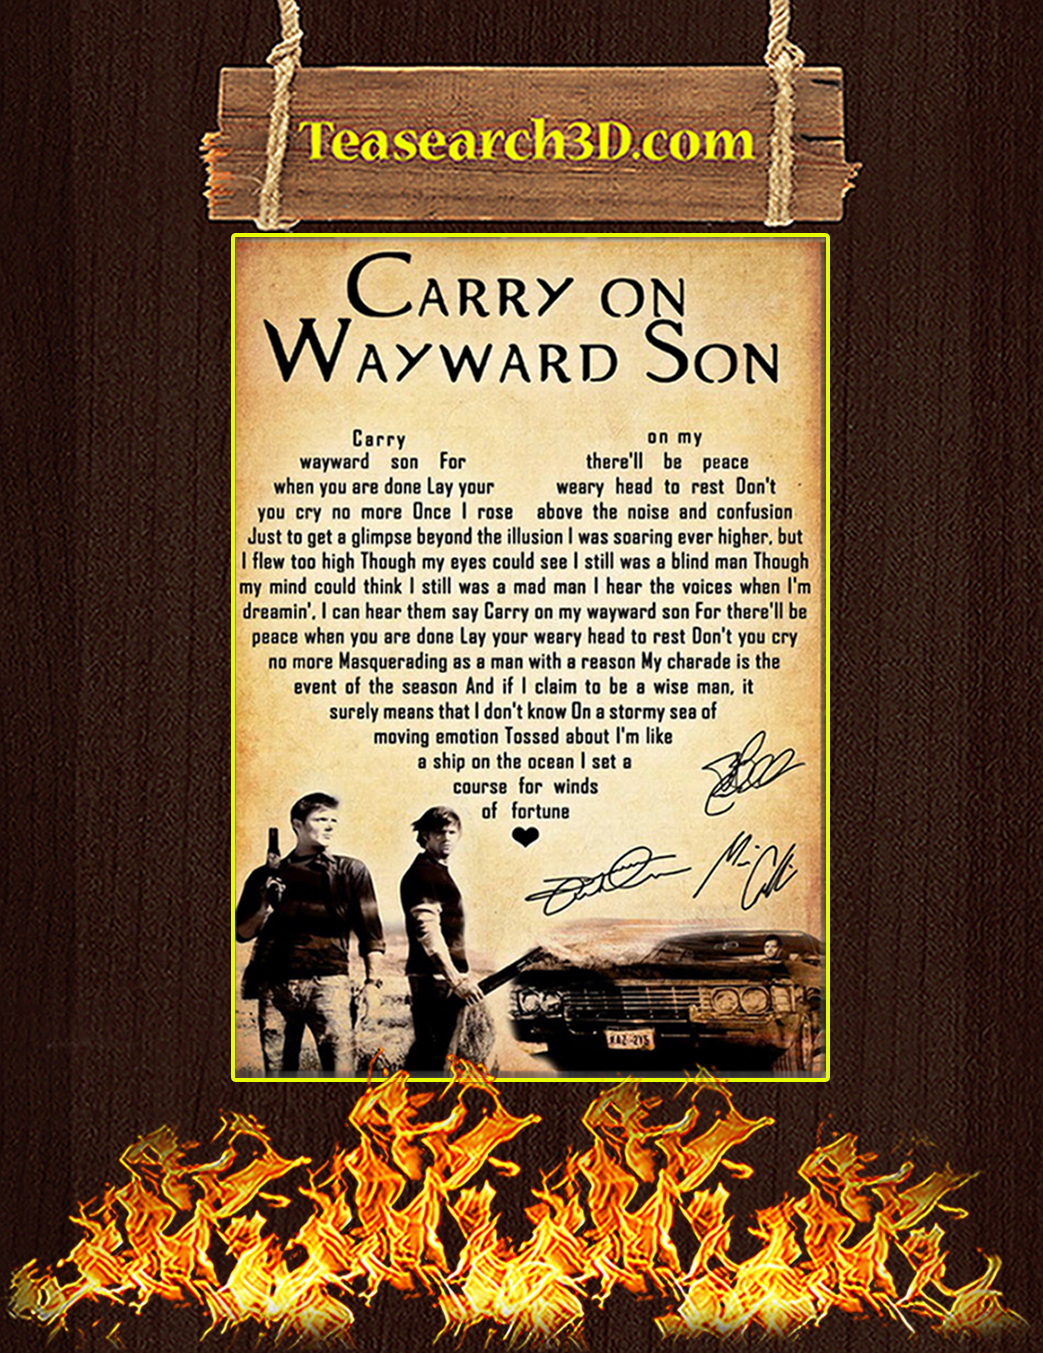 Supernatural carry on my wayward son signature poster A1